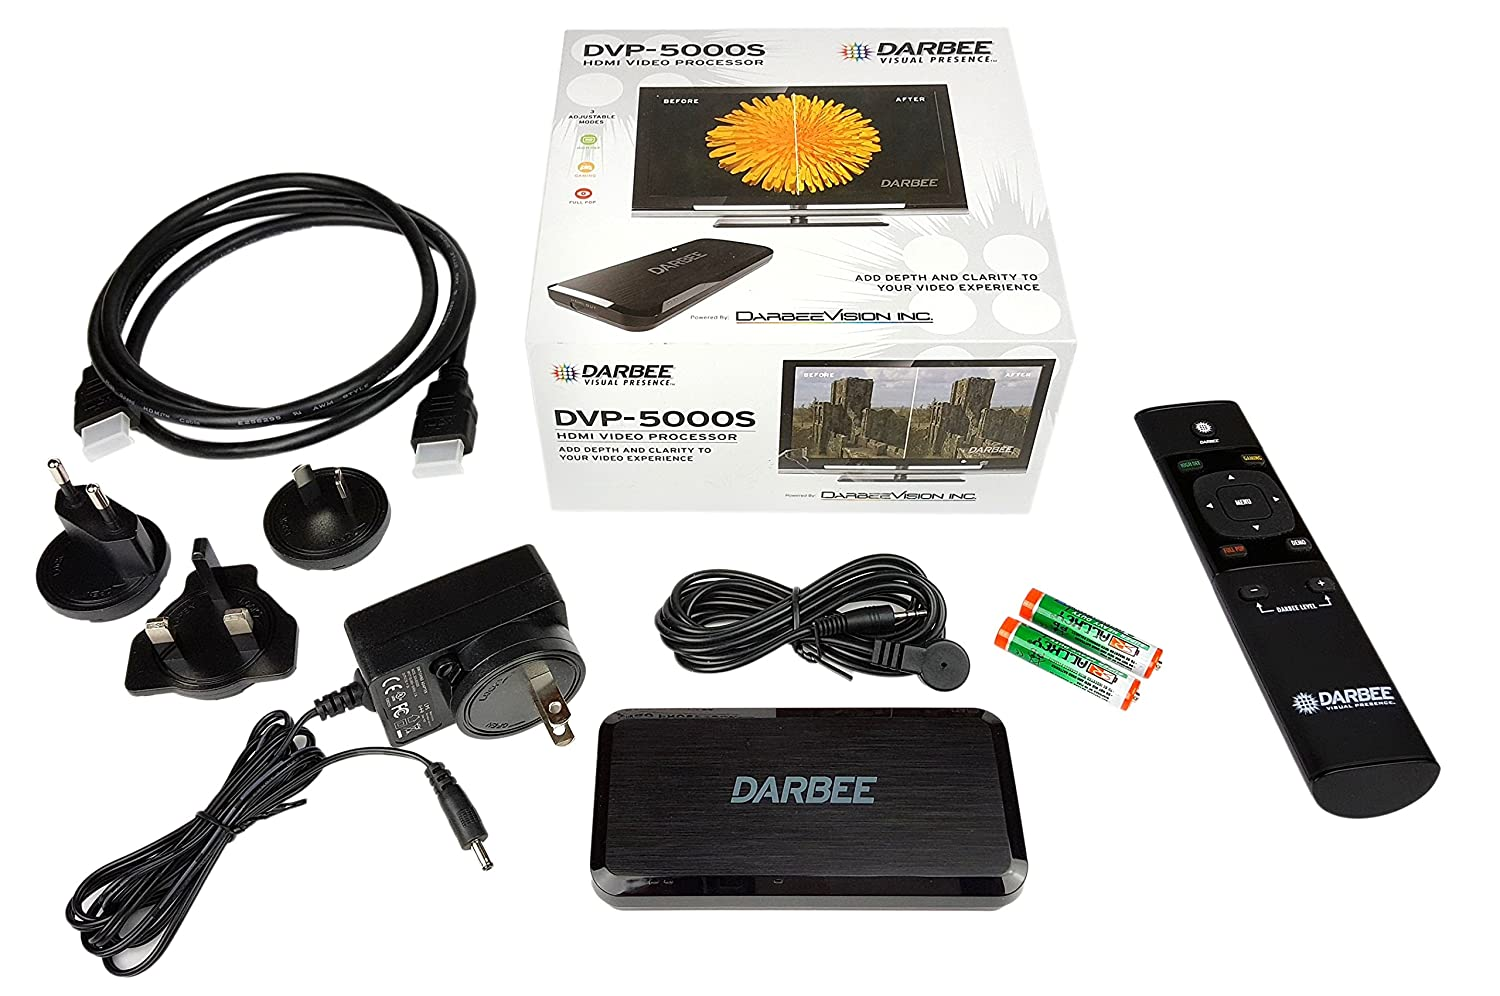 Darbeevision Dvp 5000 Darblet Hdmi Video Processor With Xbox 360 Automatically Resets Switches Page 10 Avs Forum Darbee Visual Presence Technology Home Audio Theater